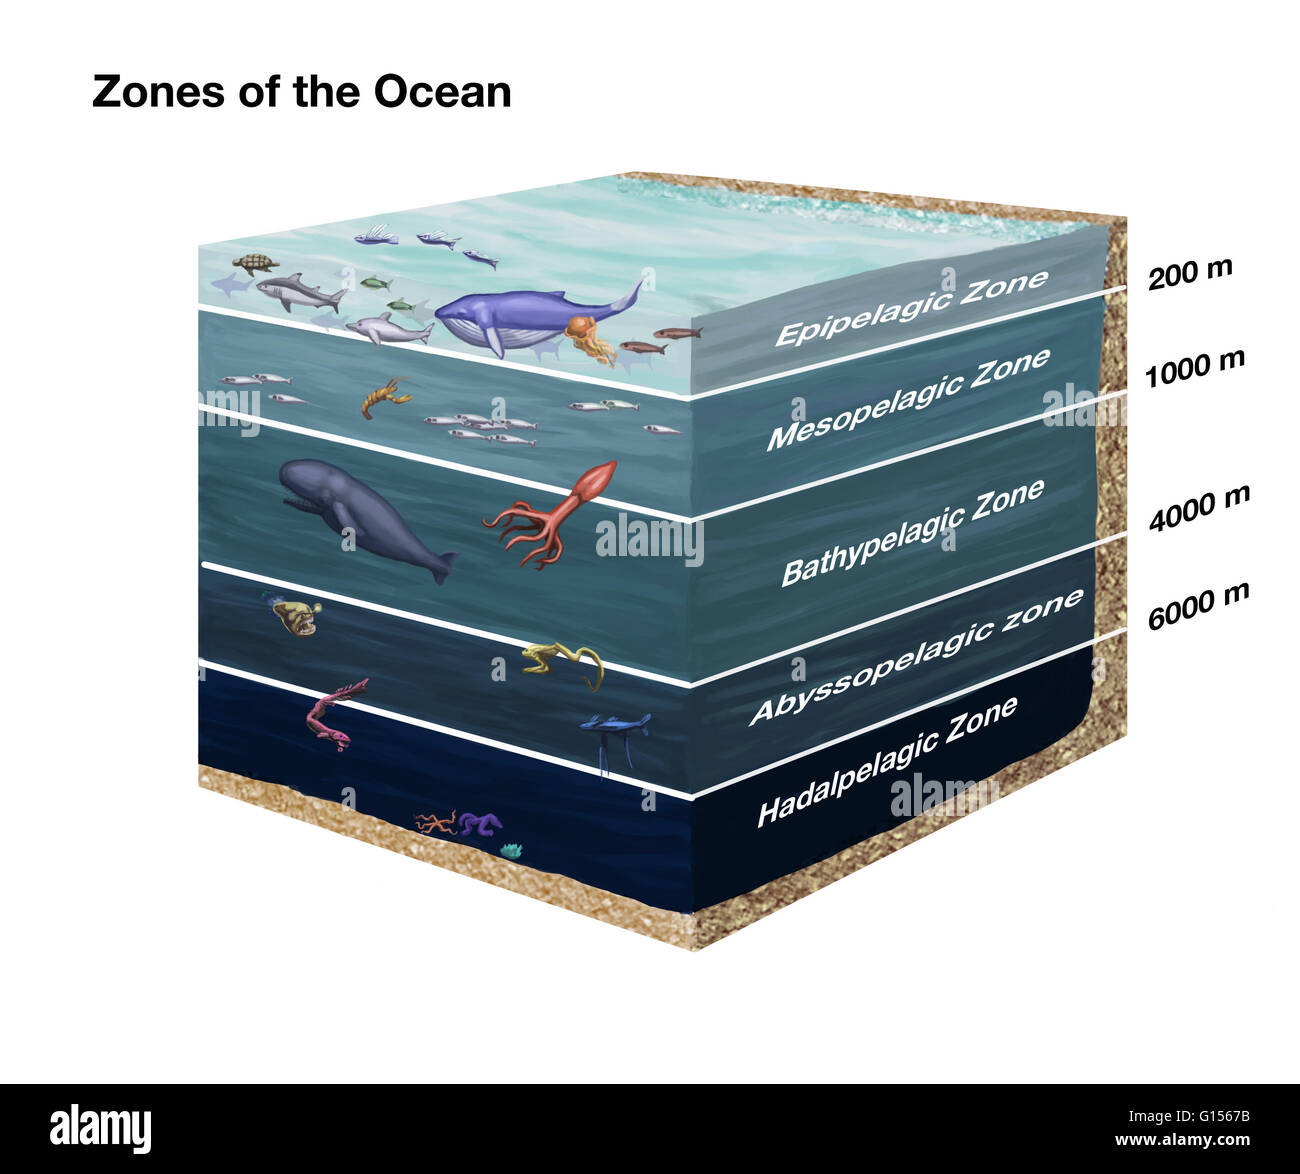 cross sectional diagram showing zones of the ocean from top to layers of the ocean cross sectional diagram showing zones of the ocean from top to bottom epipelagic, mesopelagic, bathypelagic, abyssopelagic, and hadalpelagic